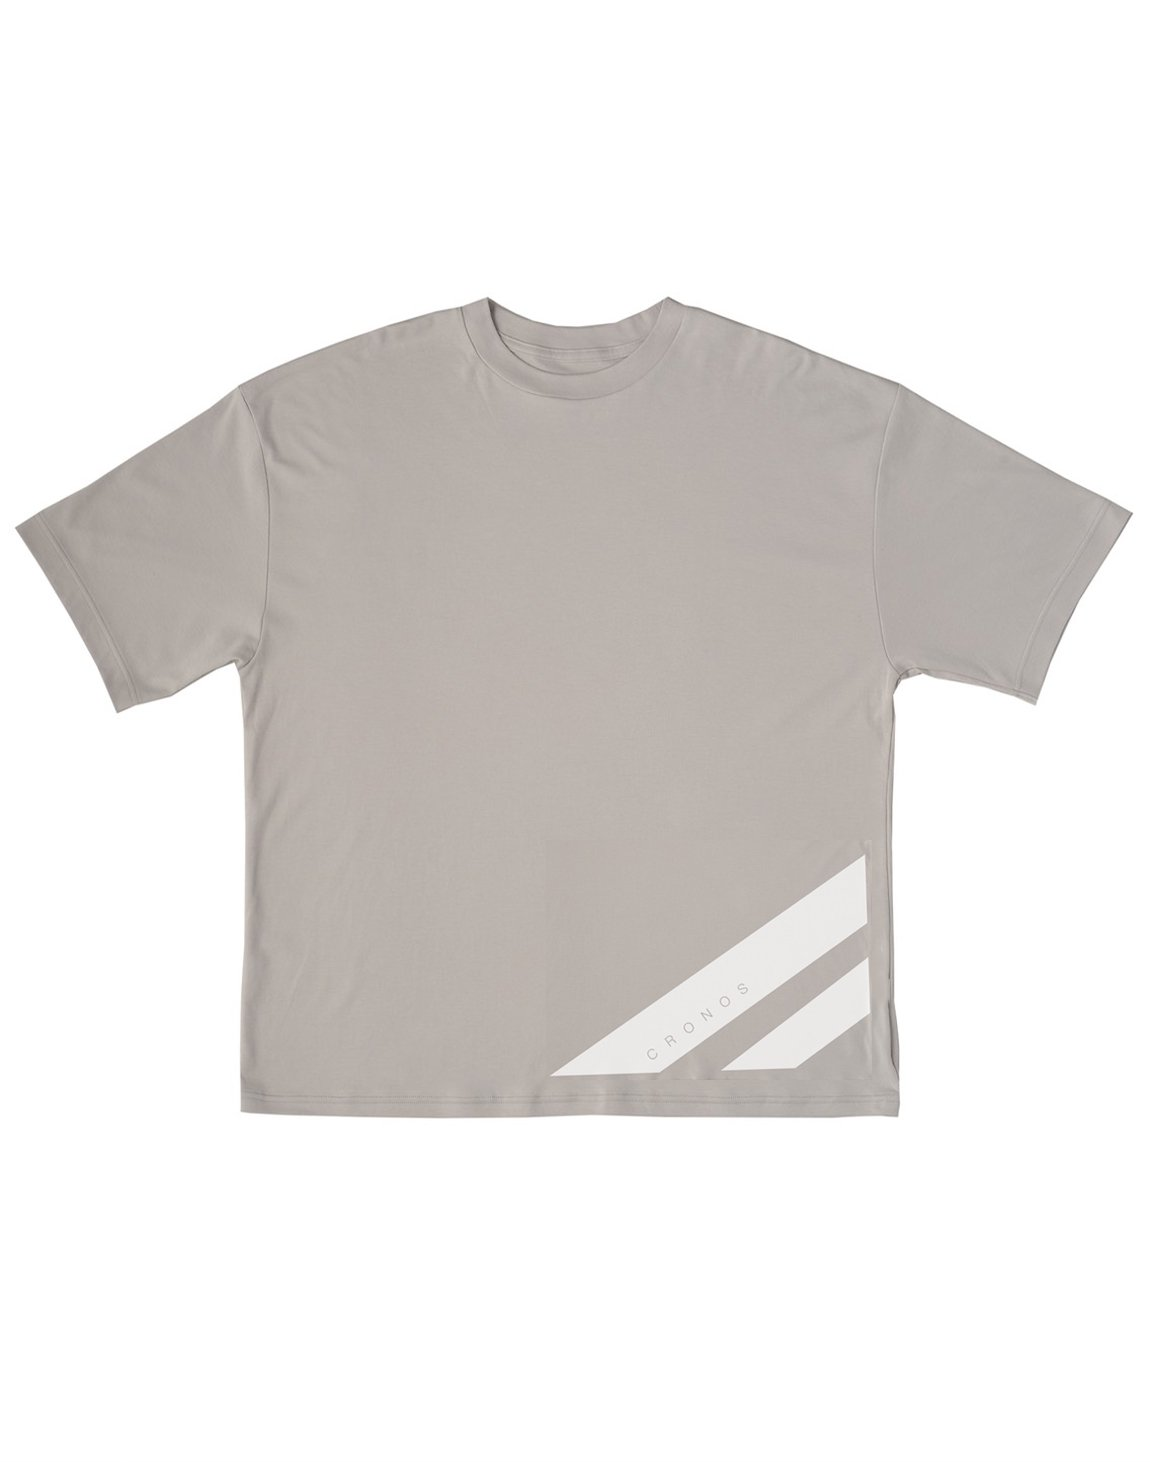 <img class='new_mark_img1' src='https://img.shop-pro.jp/img/new/icons55.gif' style='border:none;display:inline;margin:0px;padding:0px;width:auto;' />CRONOS  STRIPE LOGO NEW OVER SIZE T-SHIRTS【GRAY】